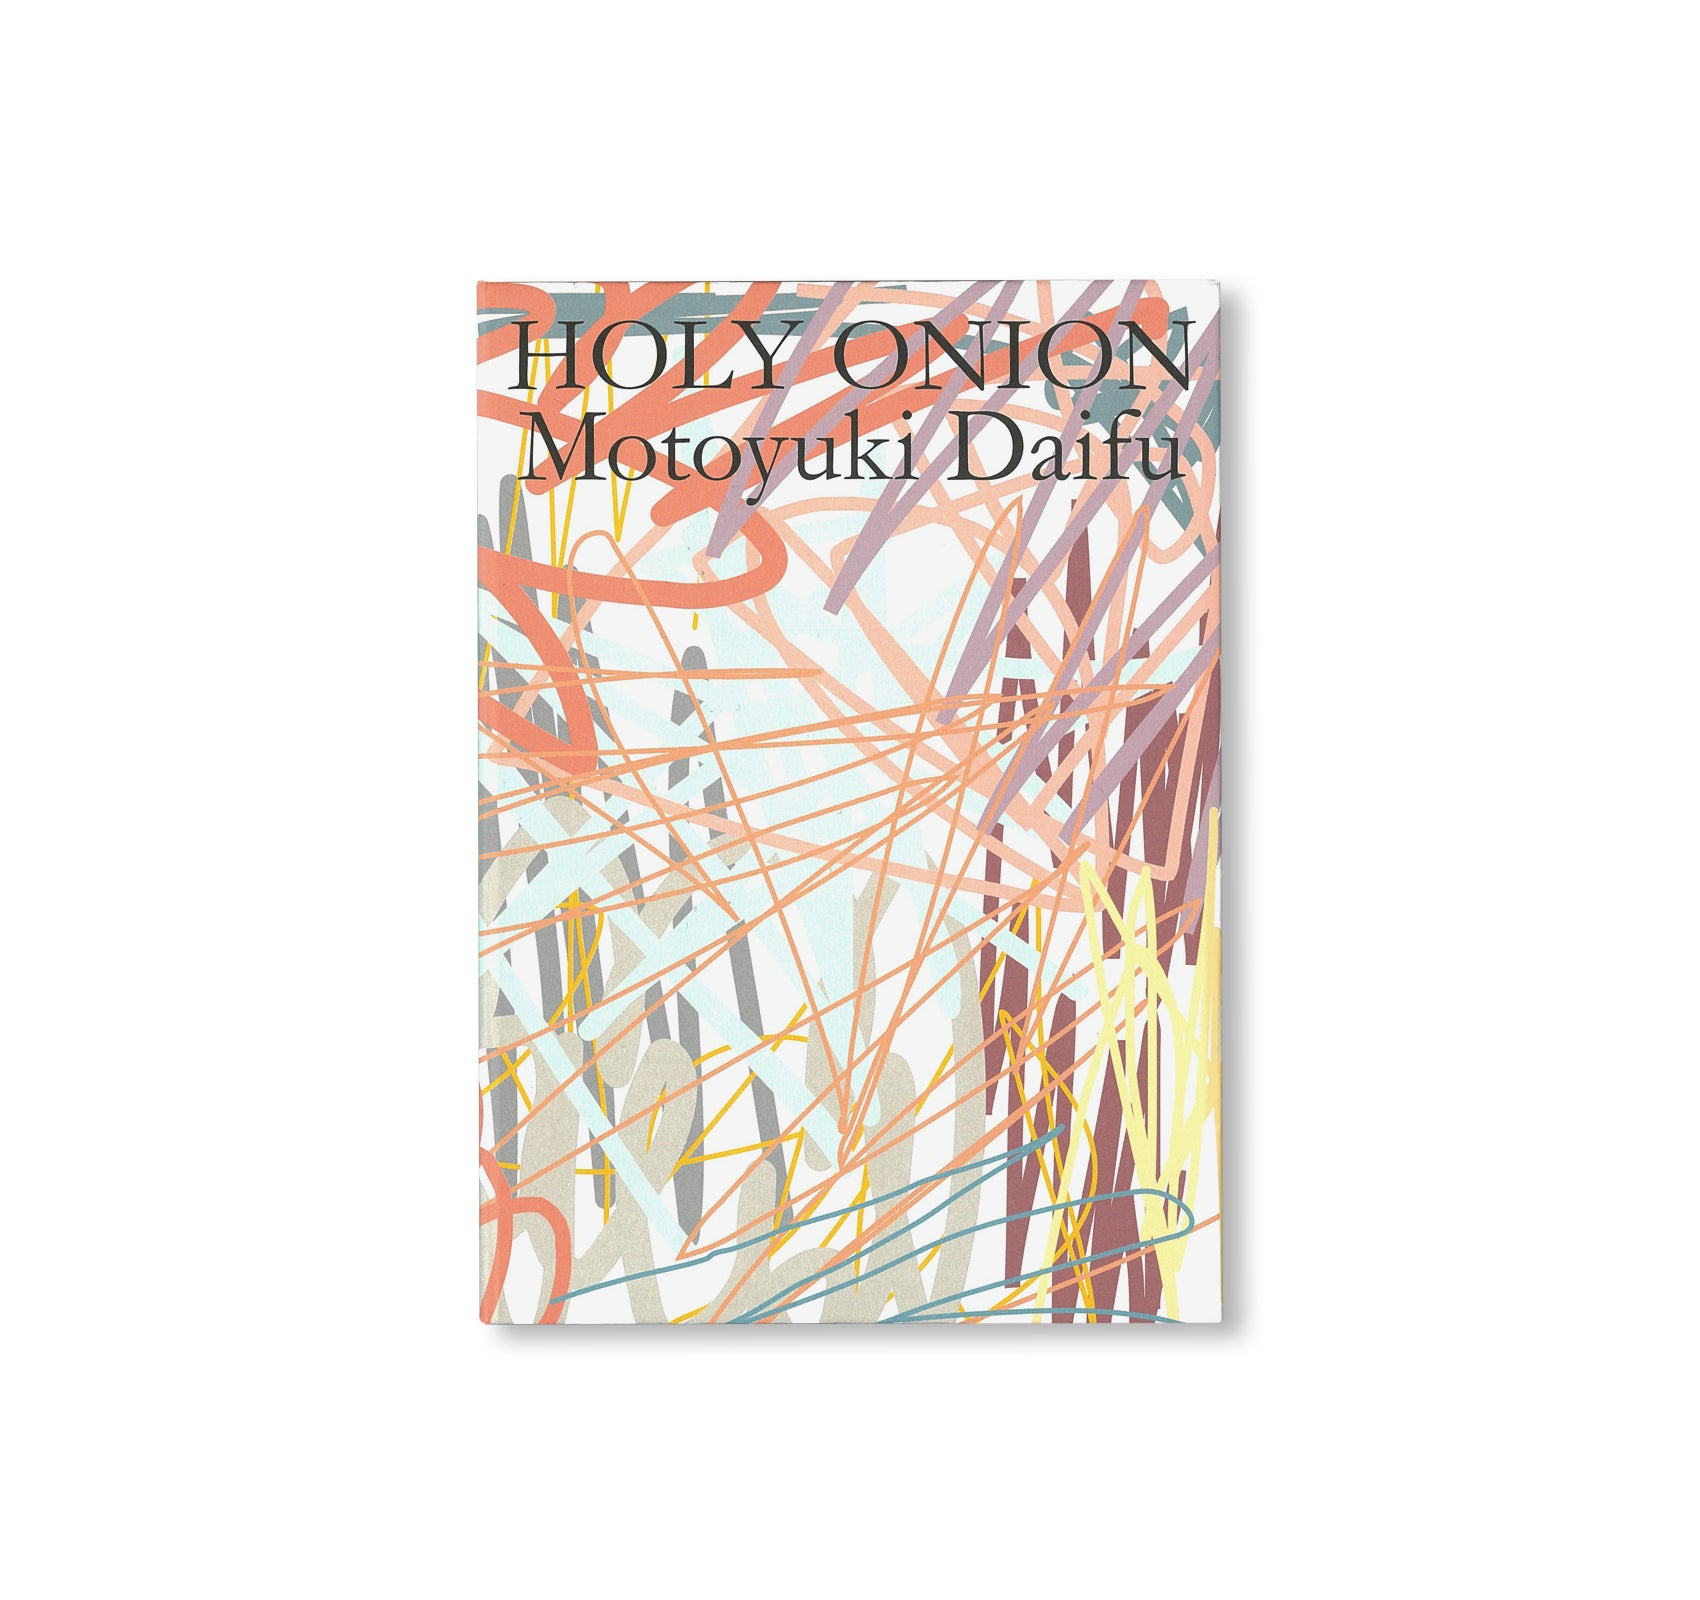 HOLY ONION by Motoyuki Daifu [SIGNED]